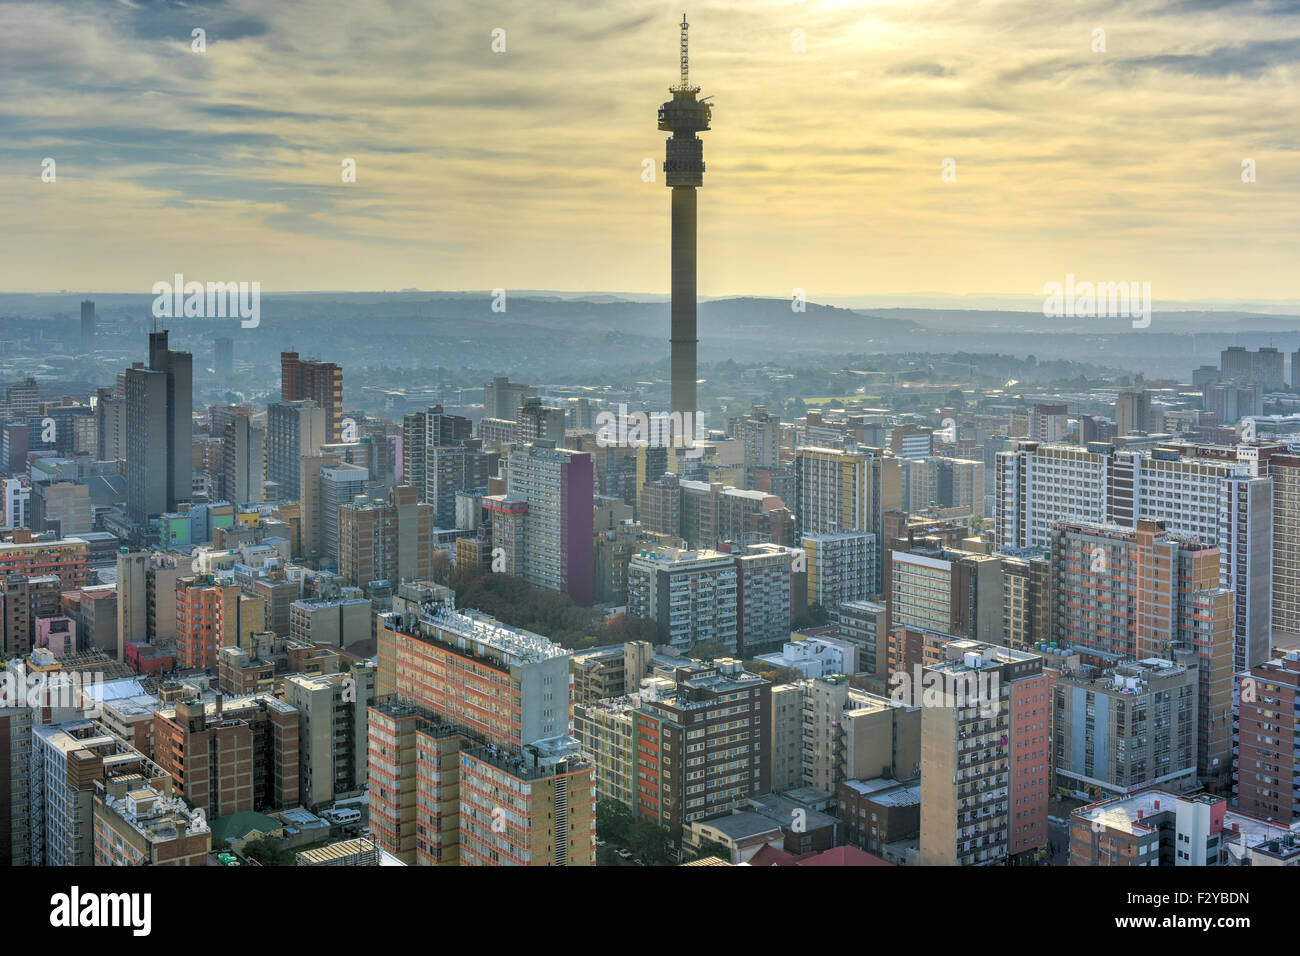 Where is Johannesburg located